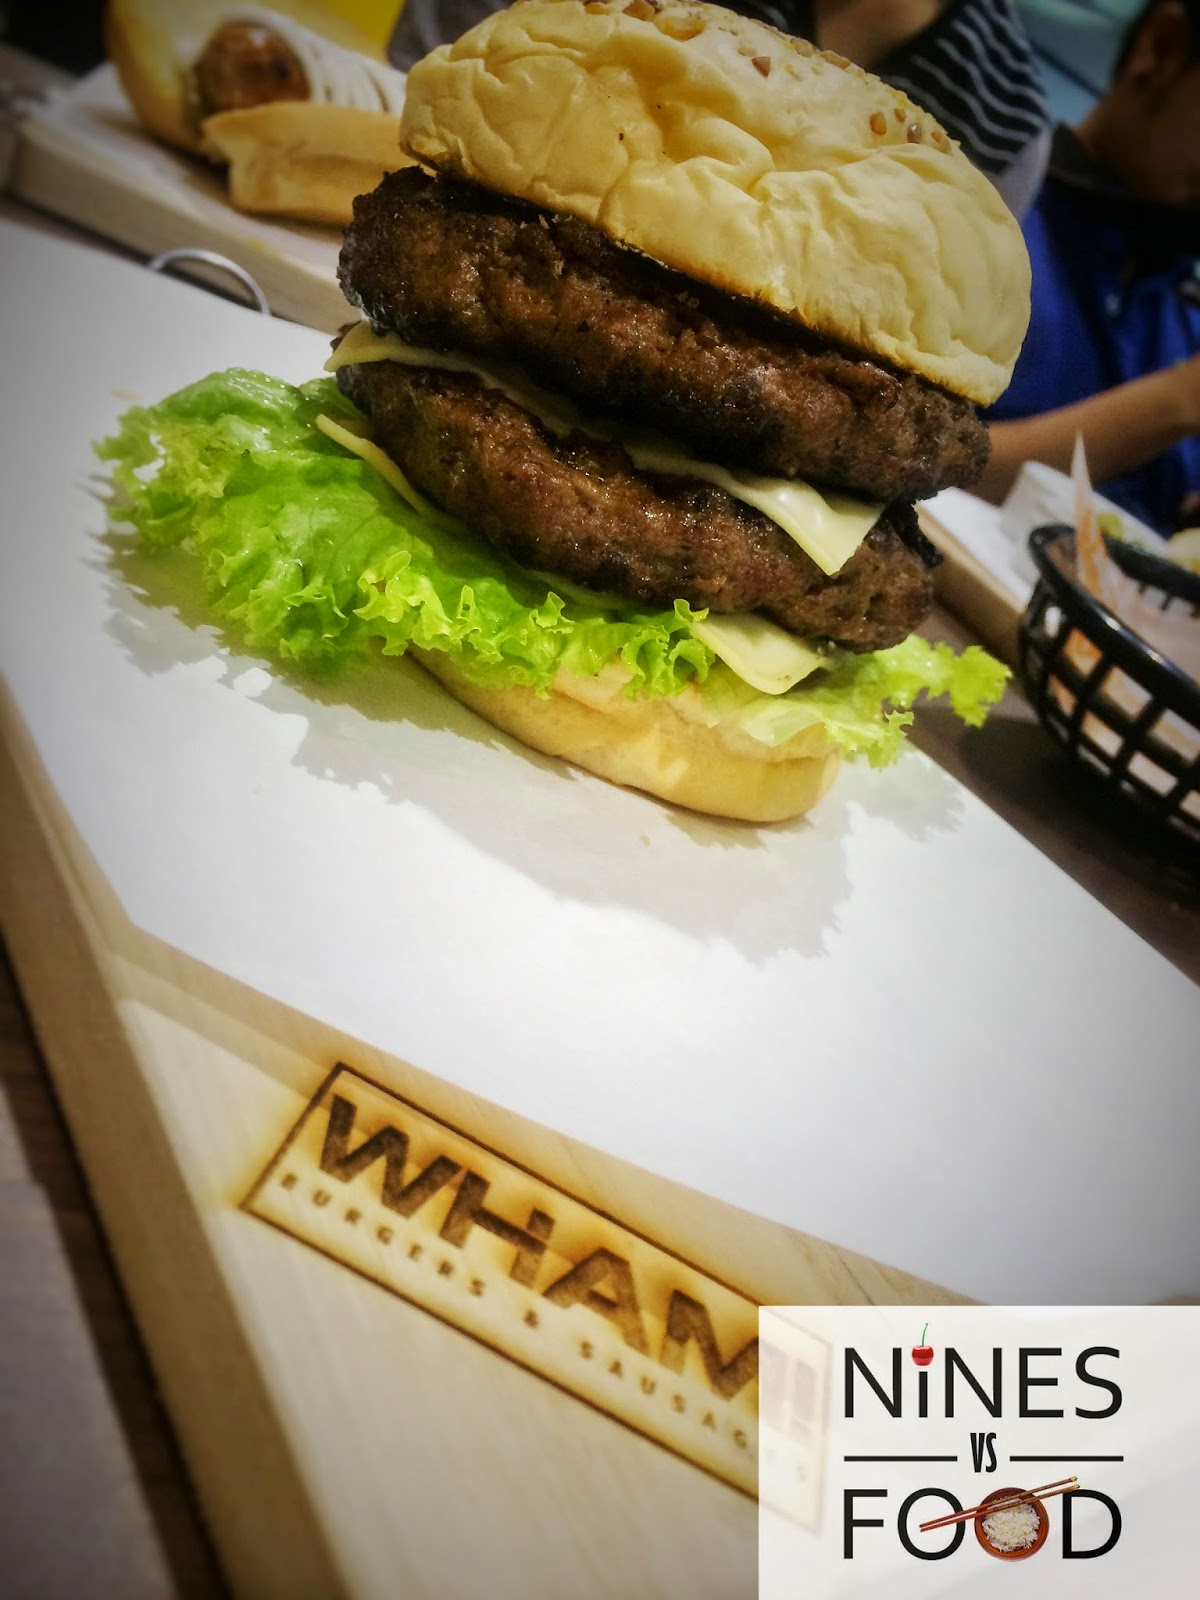 Nines vs Food - Wham! Burgers and Sausages-9.jpg